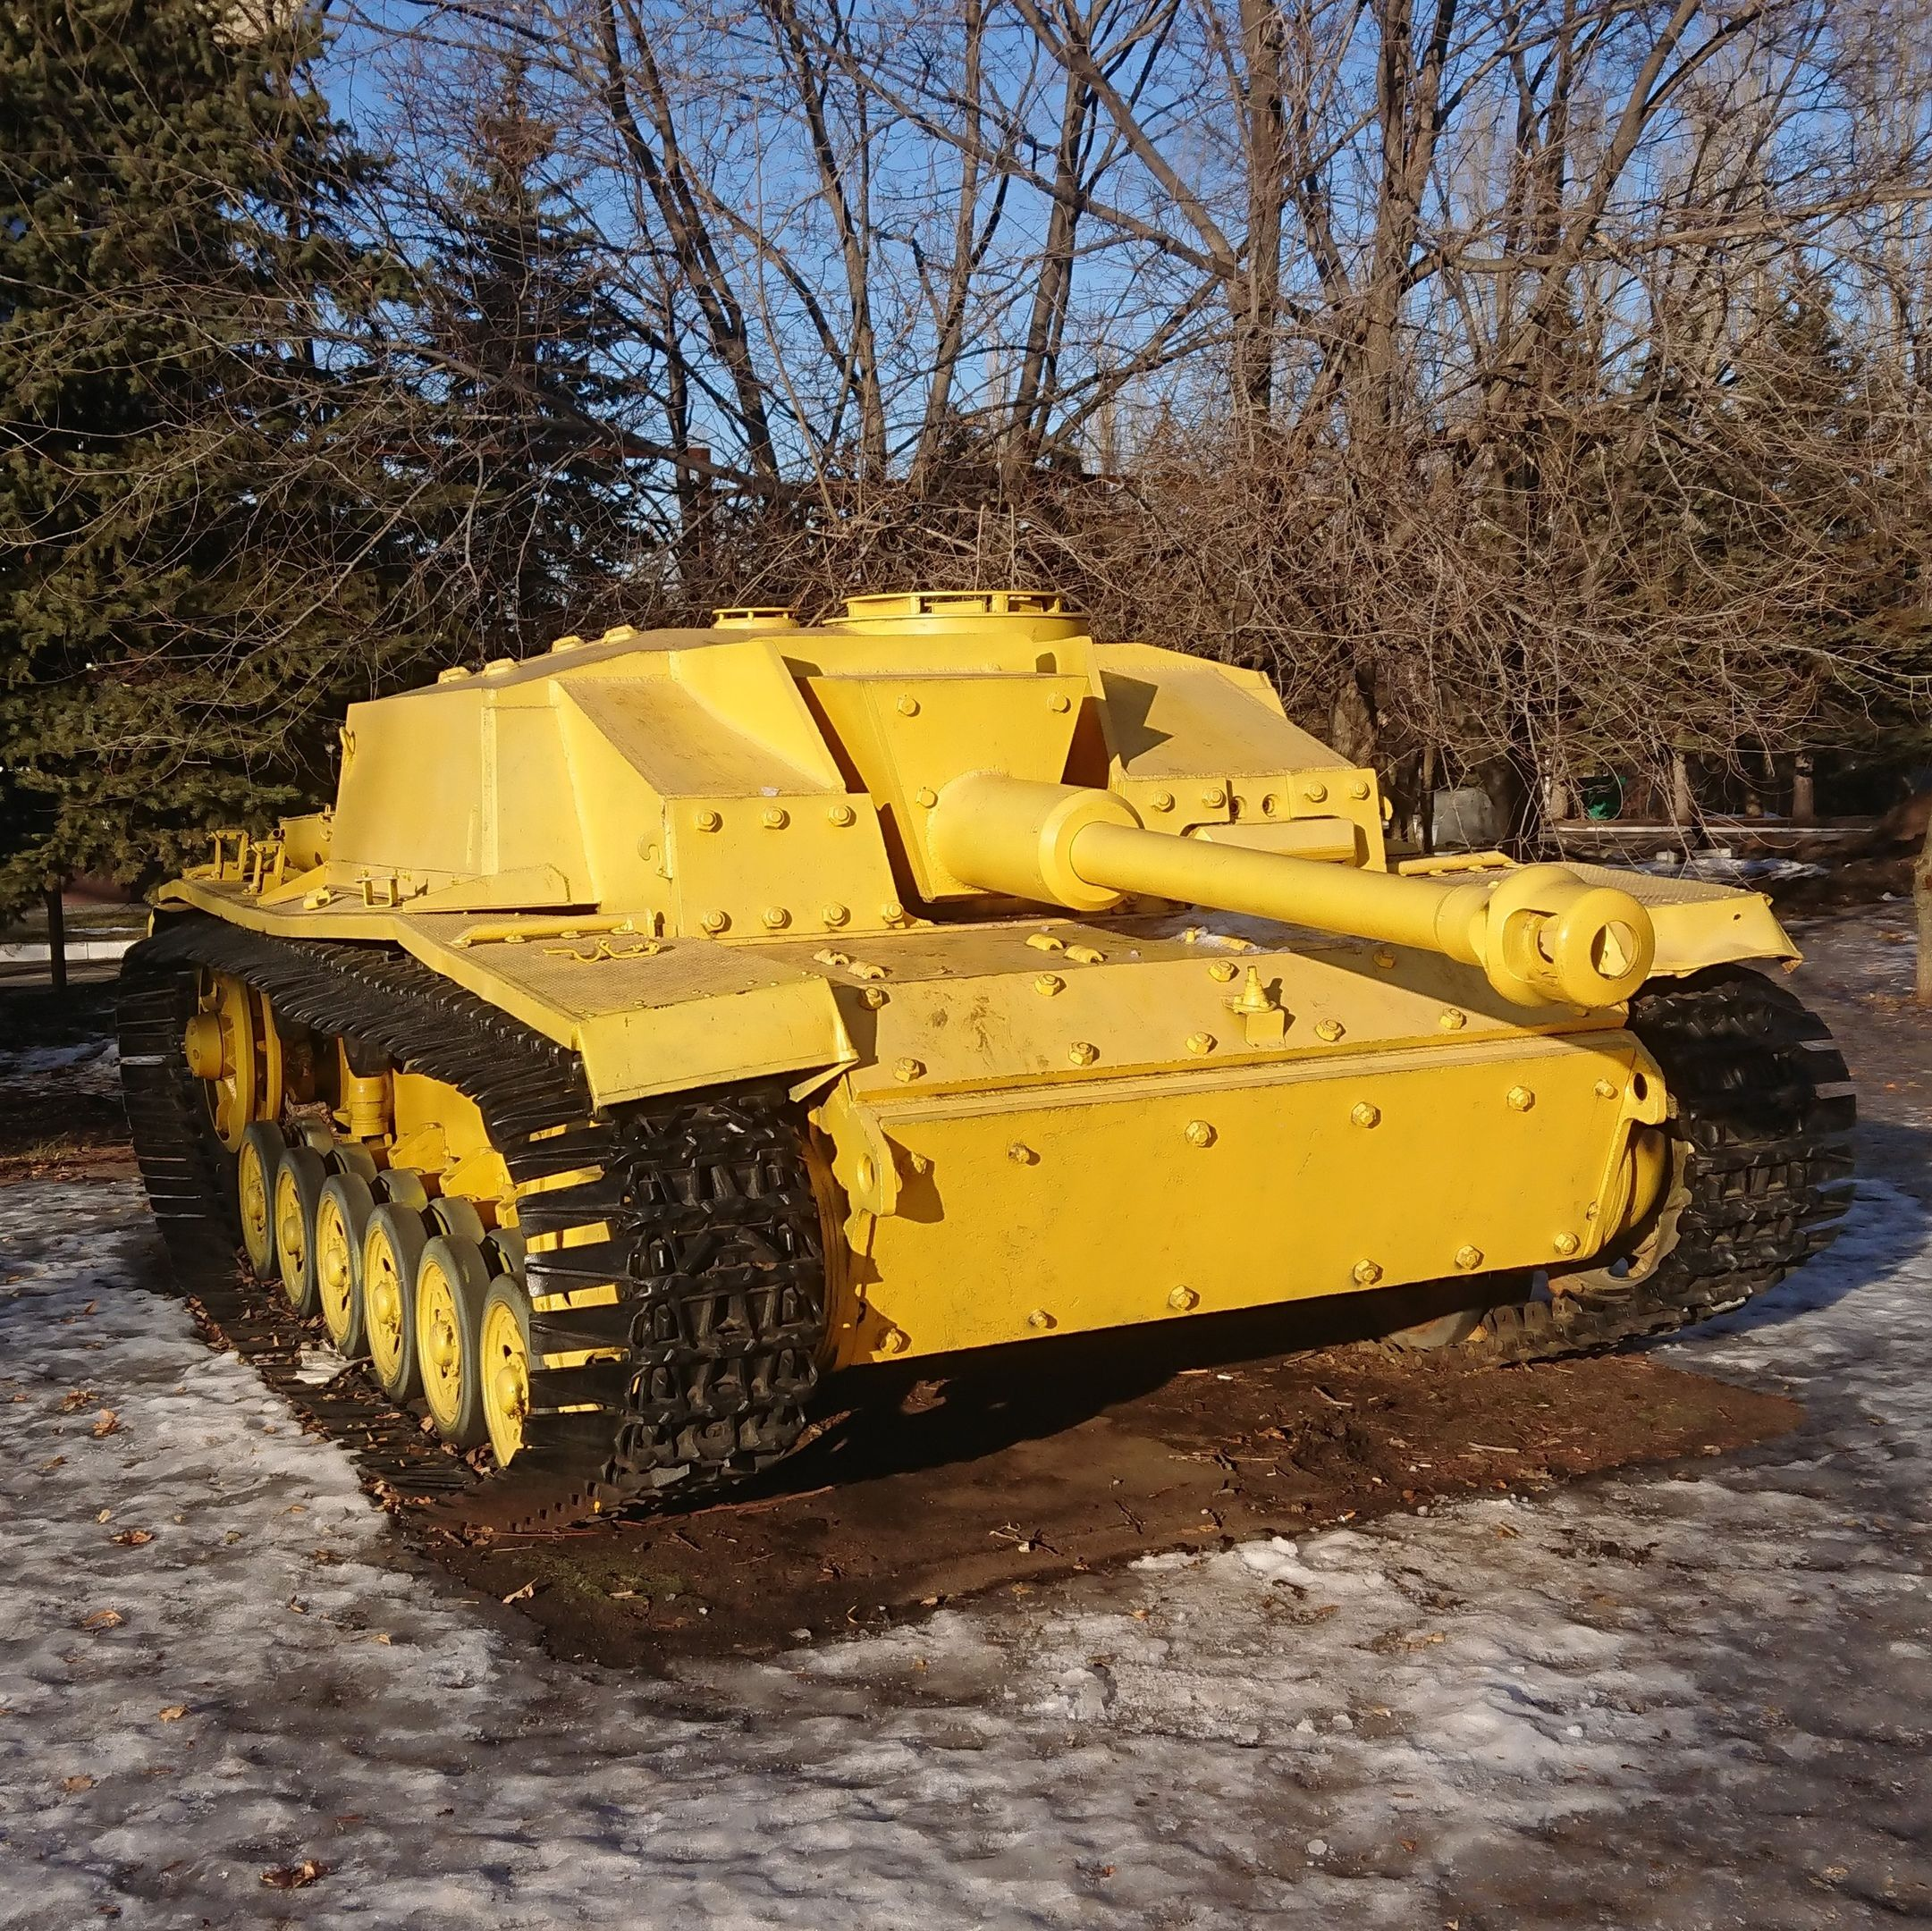 StuG-40 found in a swamp in 2002. His condition in 2020.